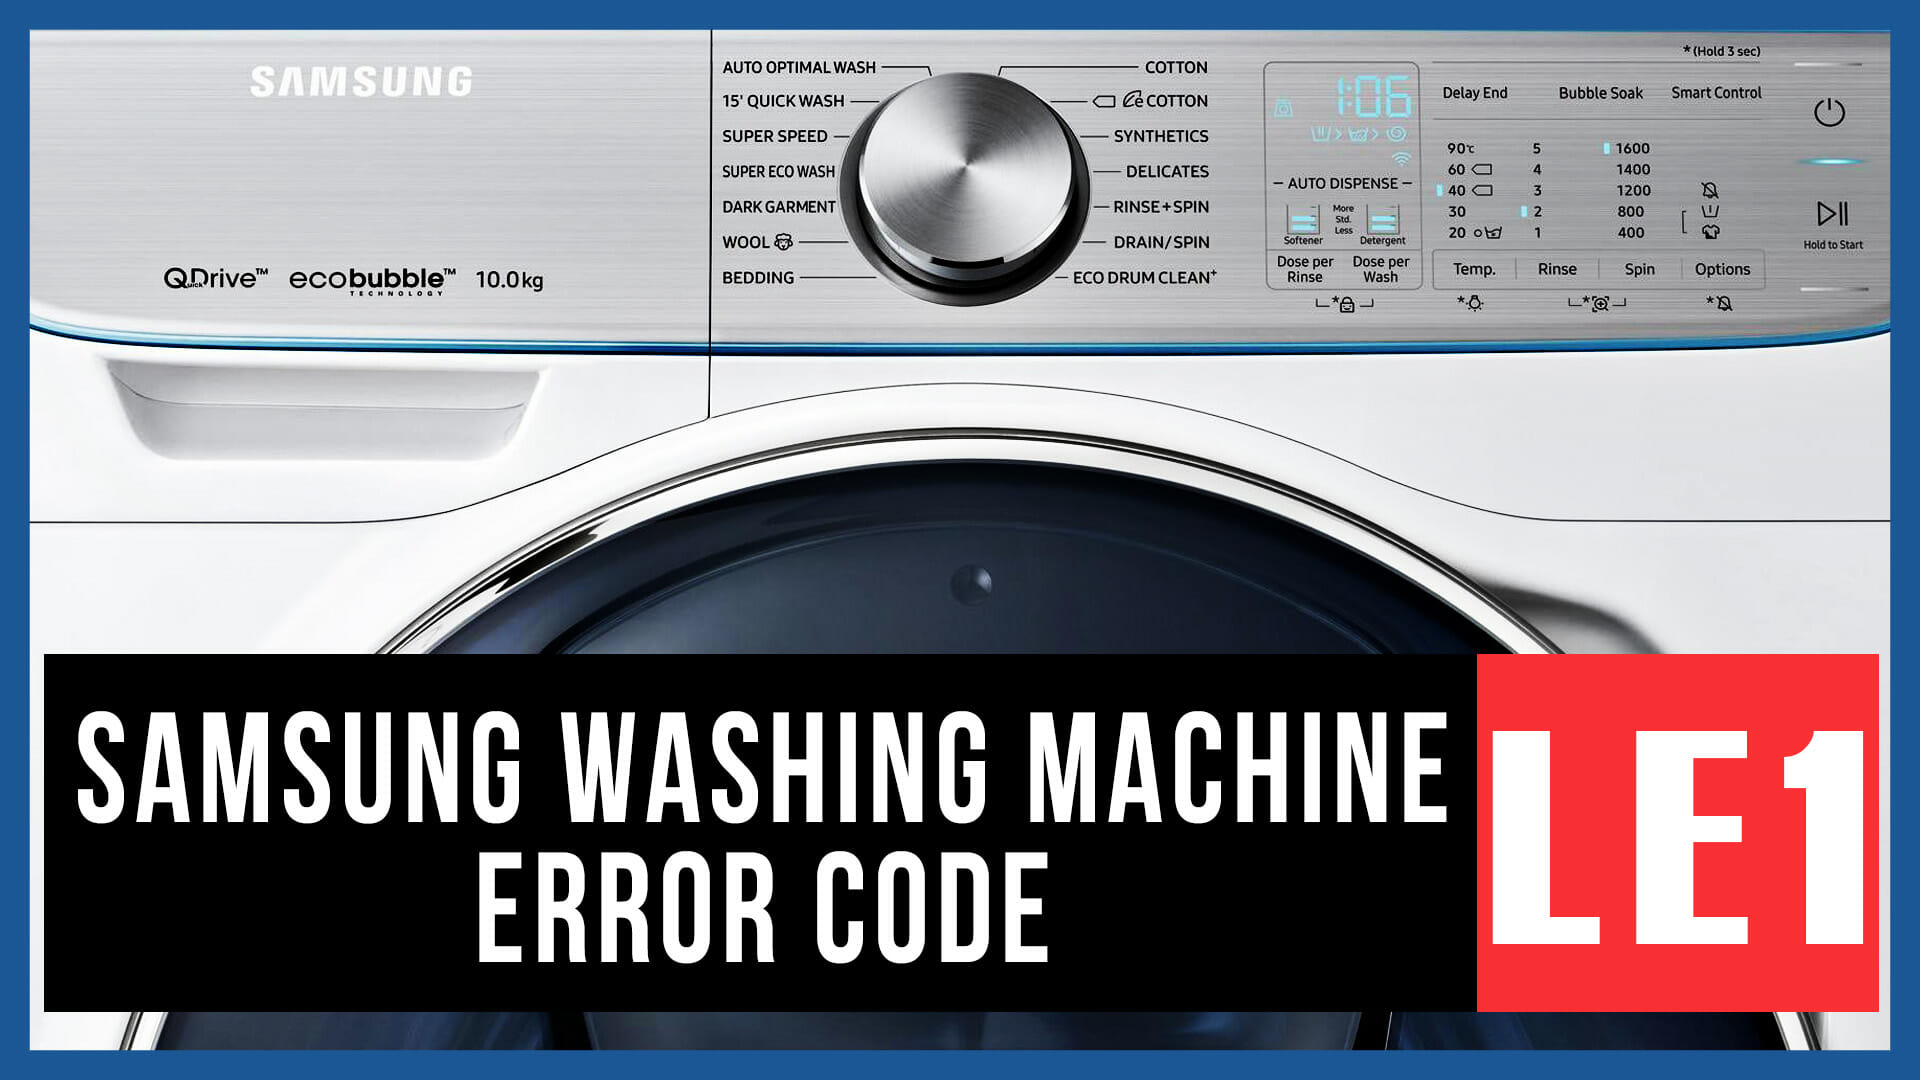 Samsung Washer Error Code Le1 Causes How Fix Problem